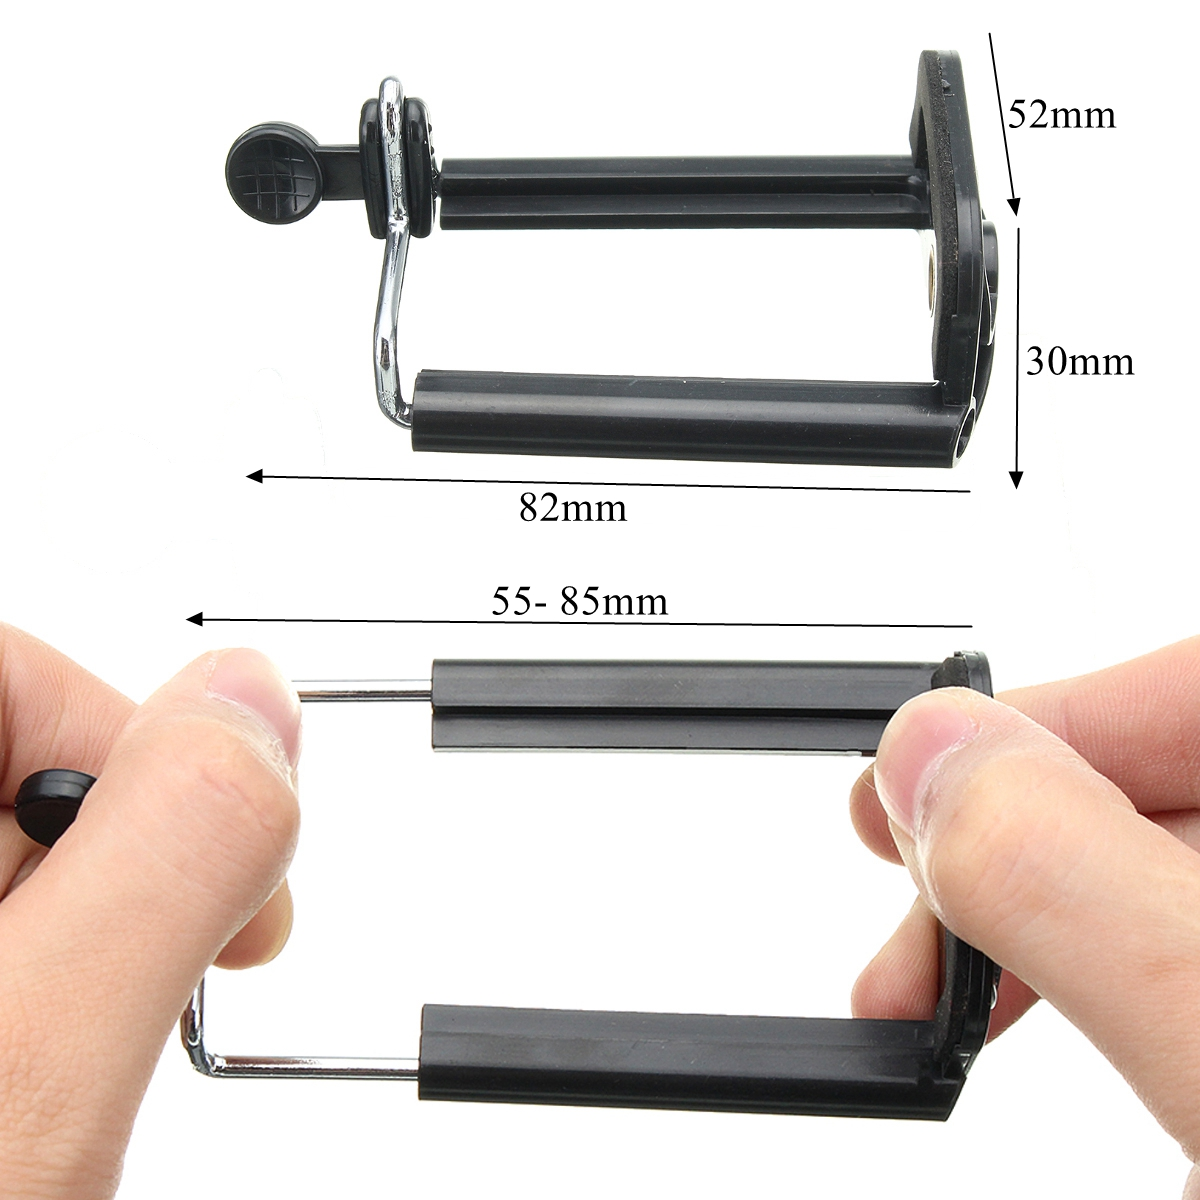 Universal Clip Bracket Tripod Monopod Stand Mount Holder For Selfie Stick Camera Cell Phone